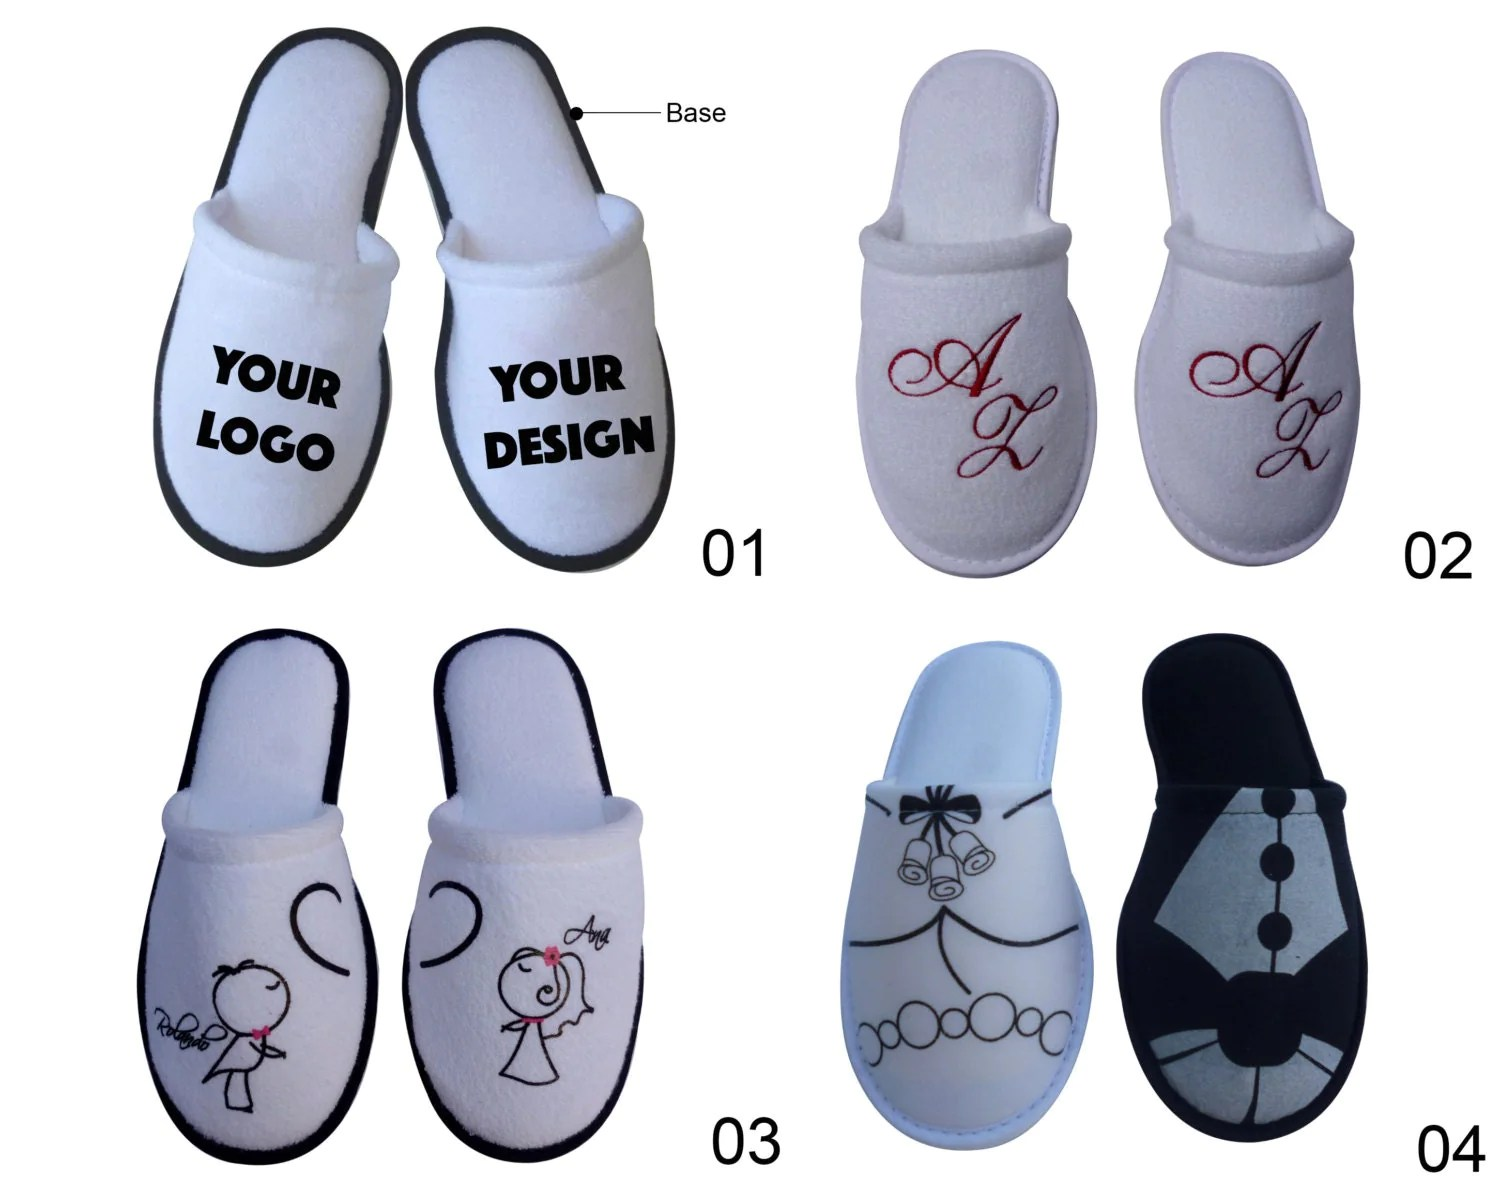 guest slippers wedding slippers 50 pairs Personalized Slippers for Party Guests Wedding Sweet 16 Anniversary BULK